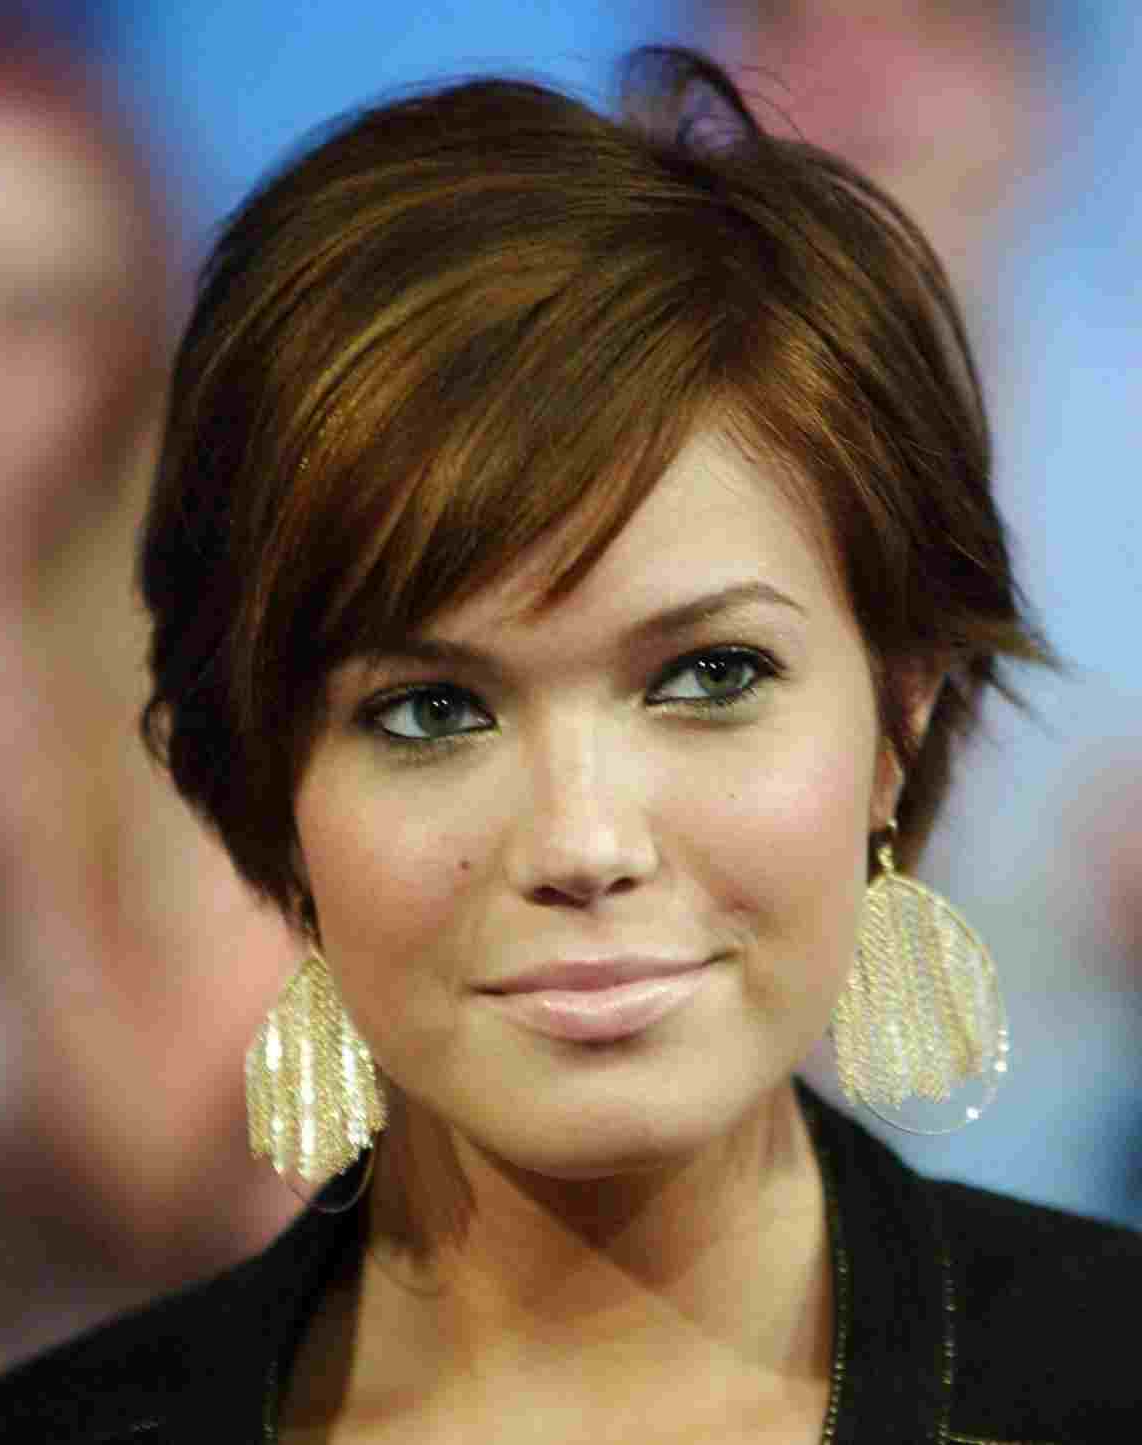 For Round Faces Front And Back Big Riverrhthebigriverreviewcom For Medium Short Hairstyles Round Faces (View 22 of 25)